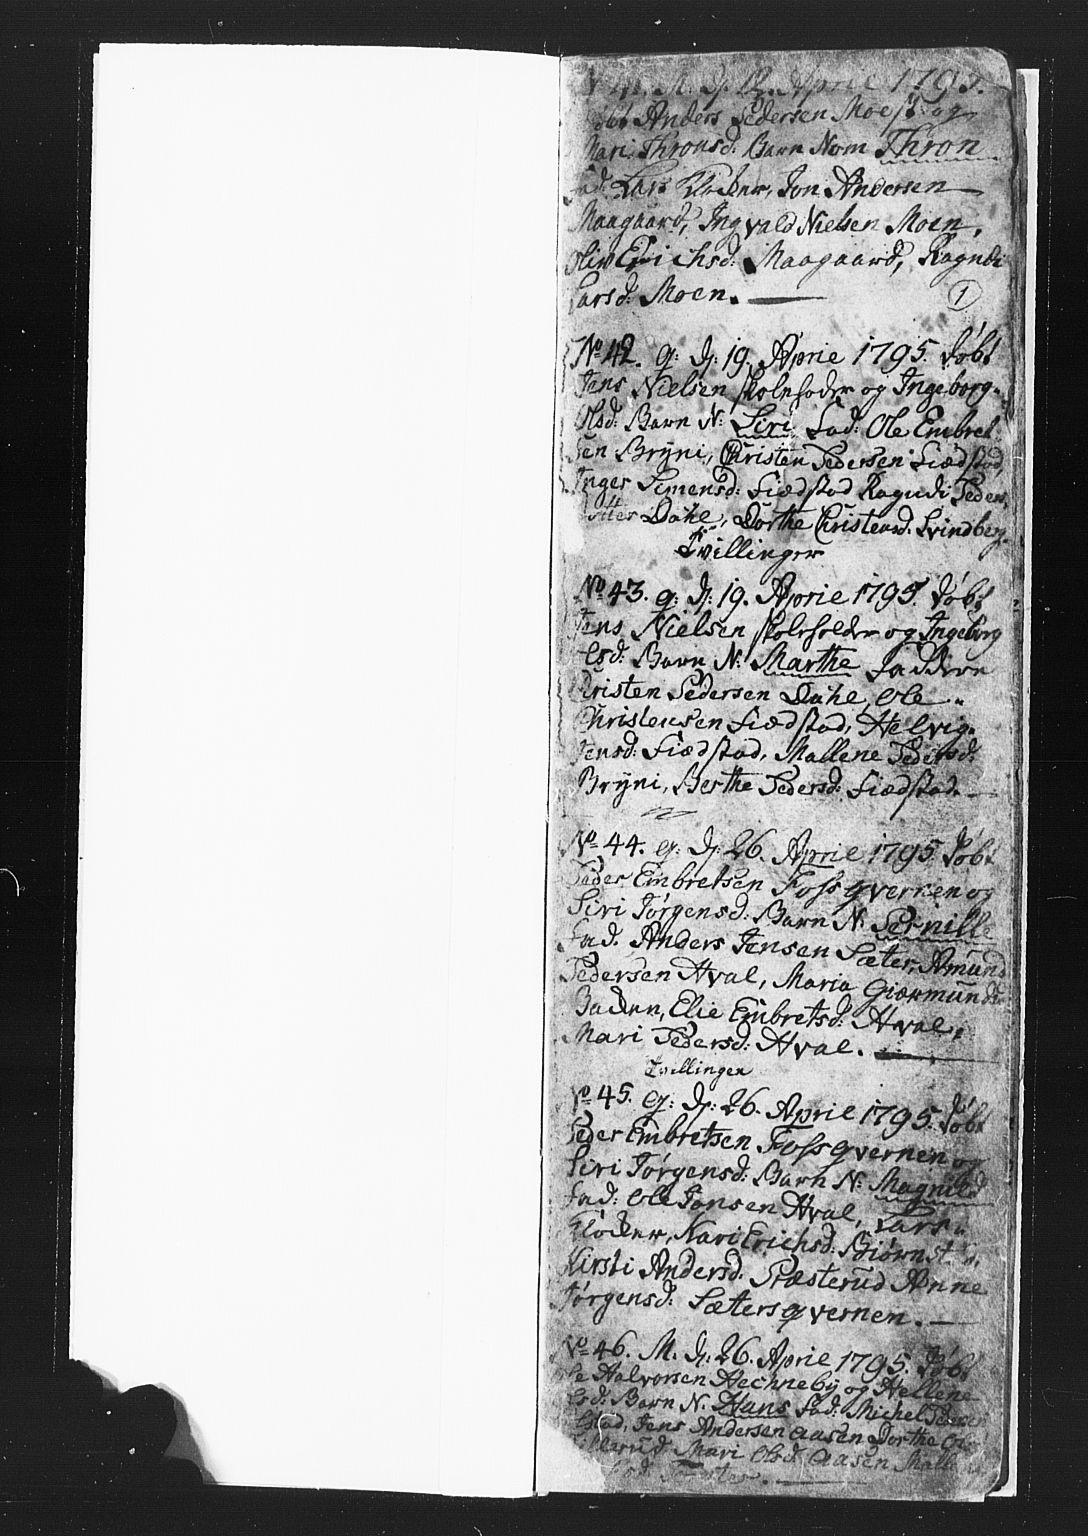 SAH, Romedal prestekontor, L/L0002: Parish register (copy) no. 2, 1795-1800, p. 0-1